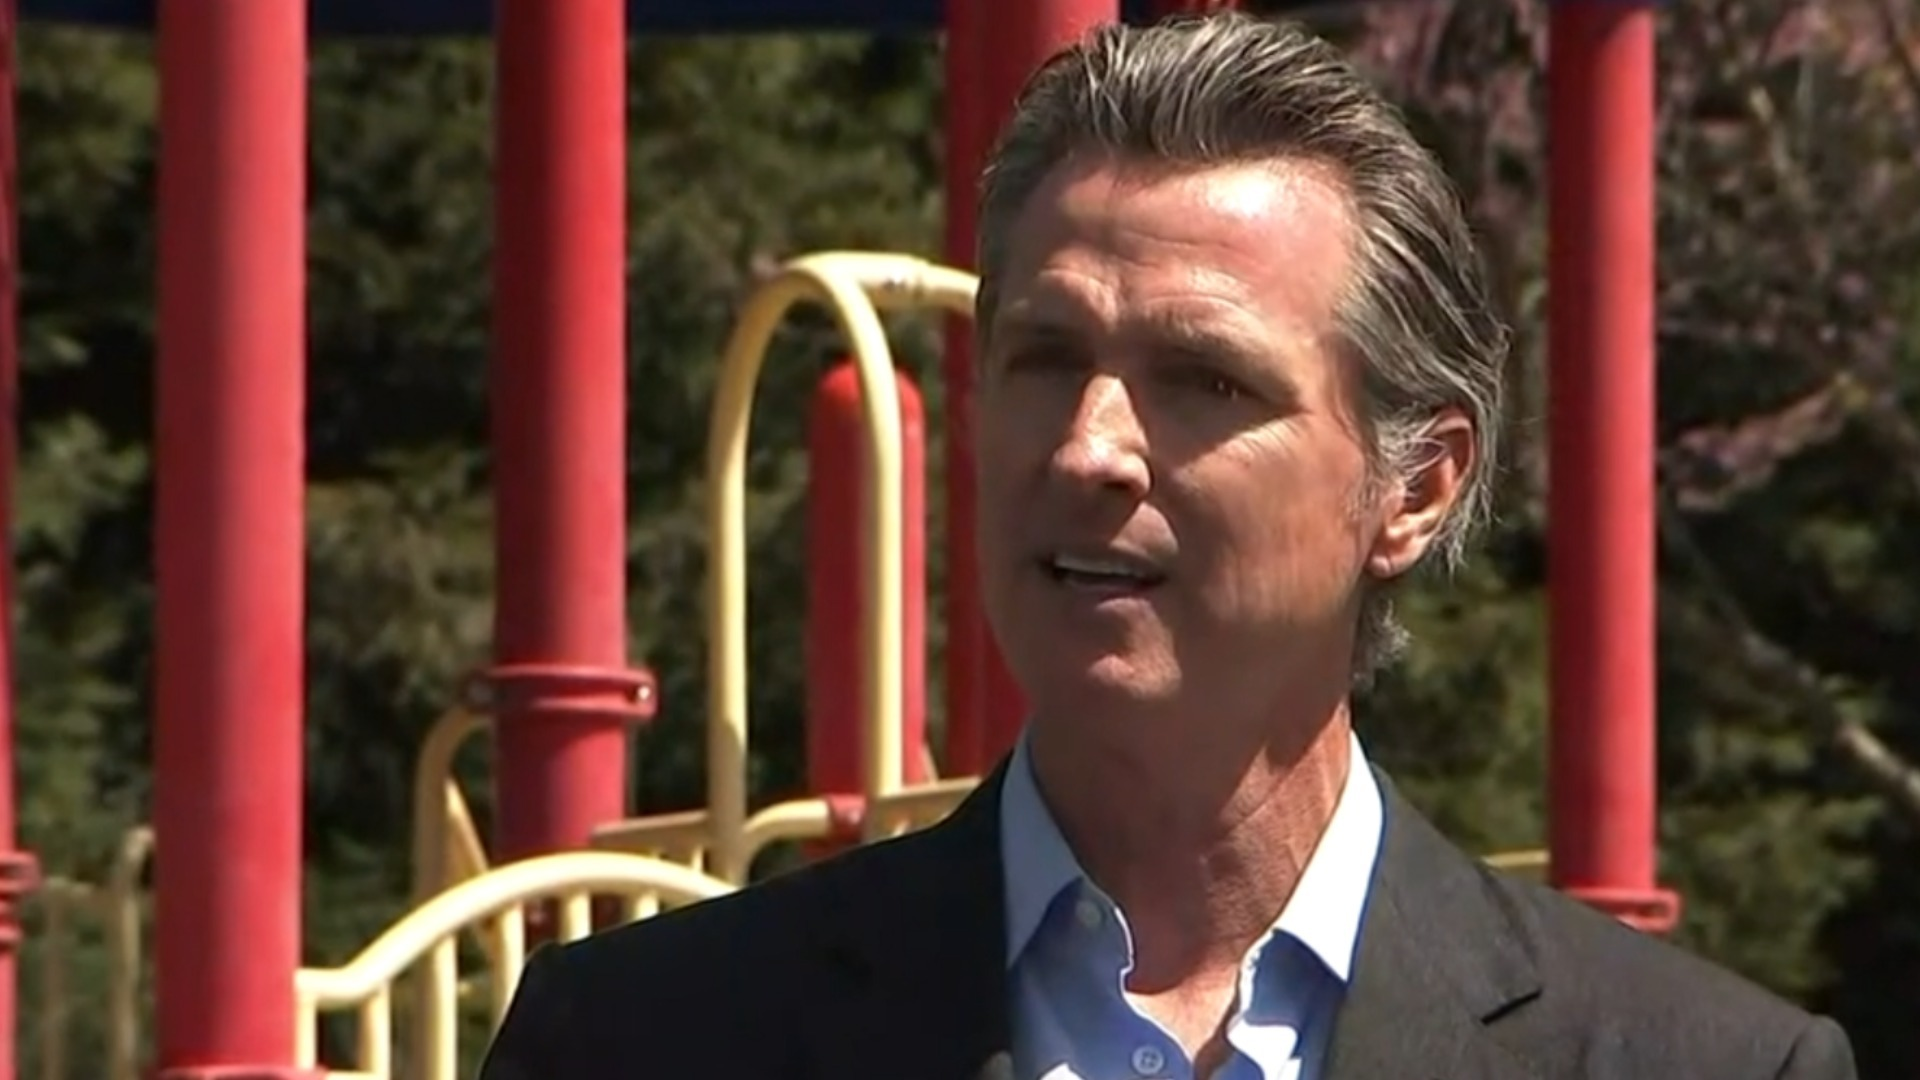 news.yahoo.com: Newsom opponents gather enough signatures to trigger recall election